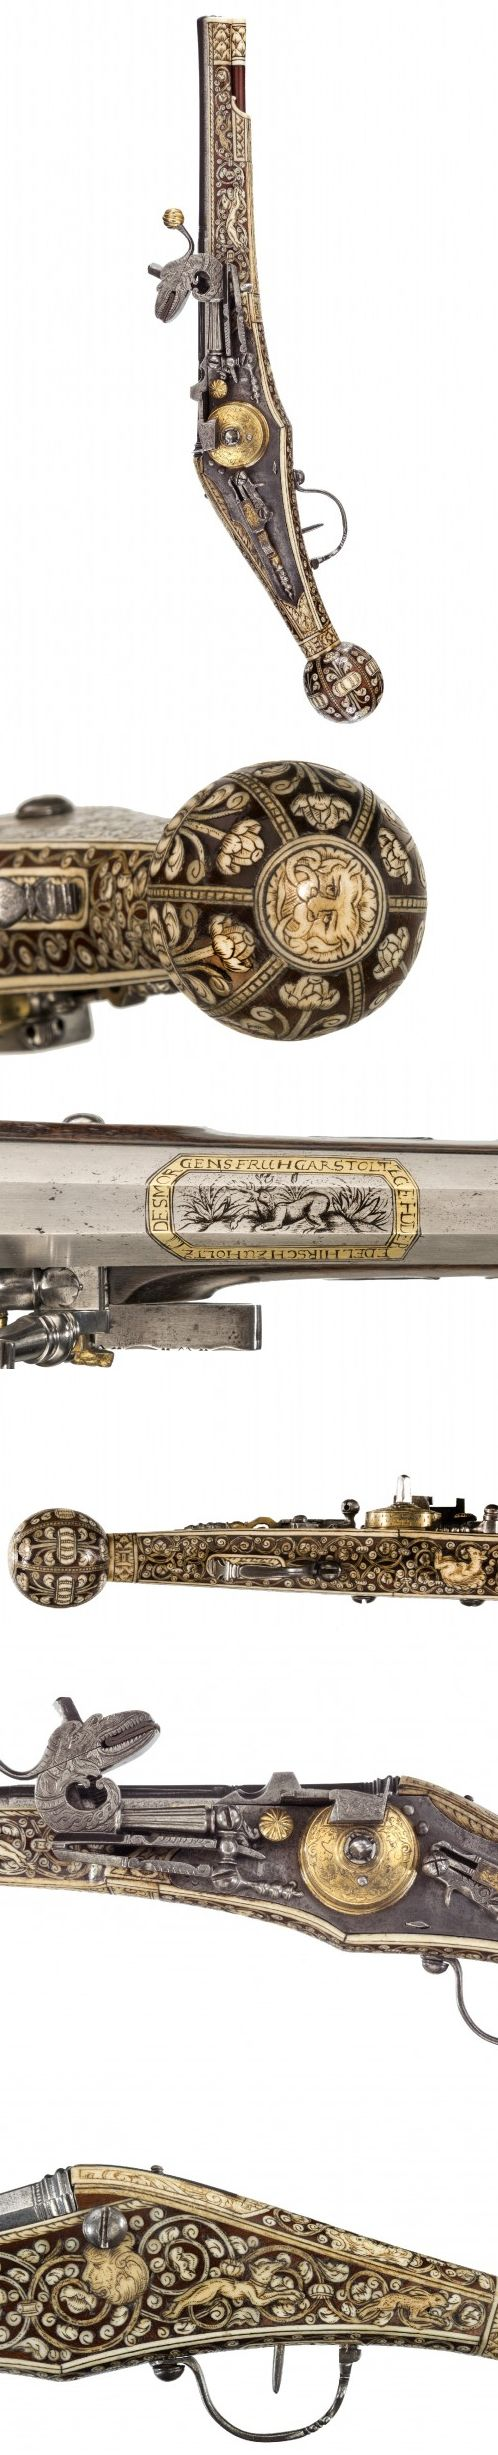 A GERMAN (SAXON) SMALL WHEELLOCK HOLSTER PISTOL MADE FOR A BOY, ALMOST CERTAINLY A YOUNG NOBLE OF THE ELECTORAL COURT, WITH FRUITWOOD STOCK INLAID WITH ENGRAVED STAGHORN AND THE LOCK WITH FIRE-GILT BRASS MOUNTS, DRESDEN, CIRCA 1600.